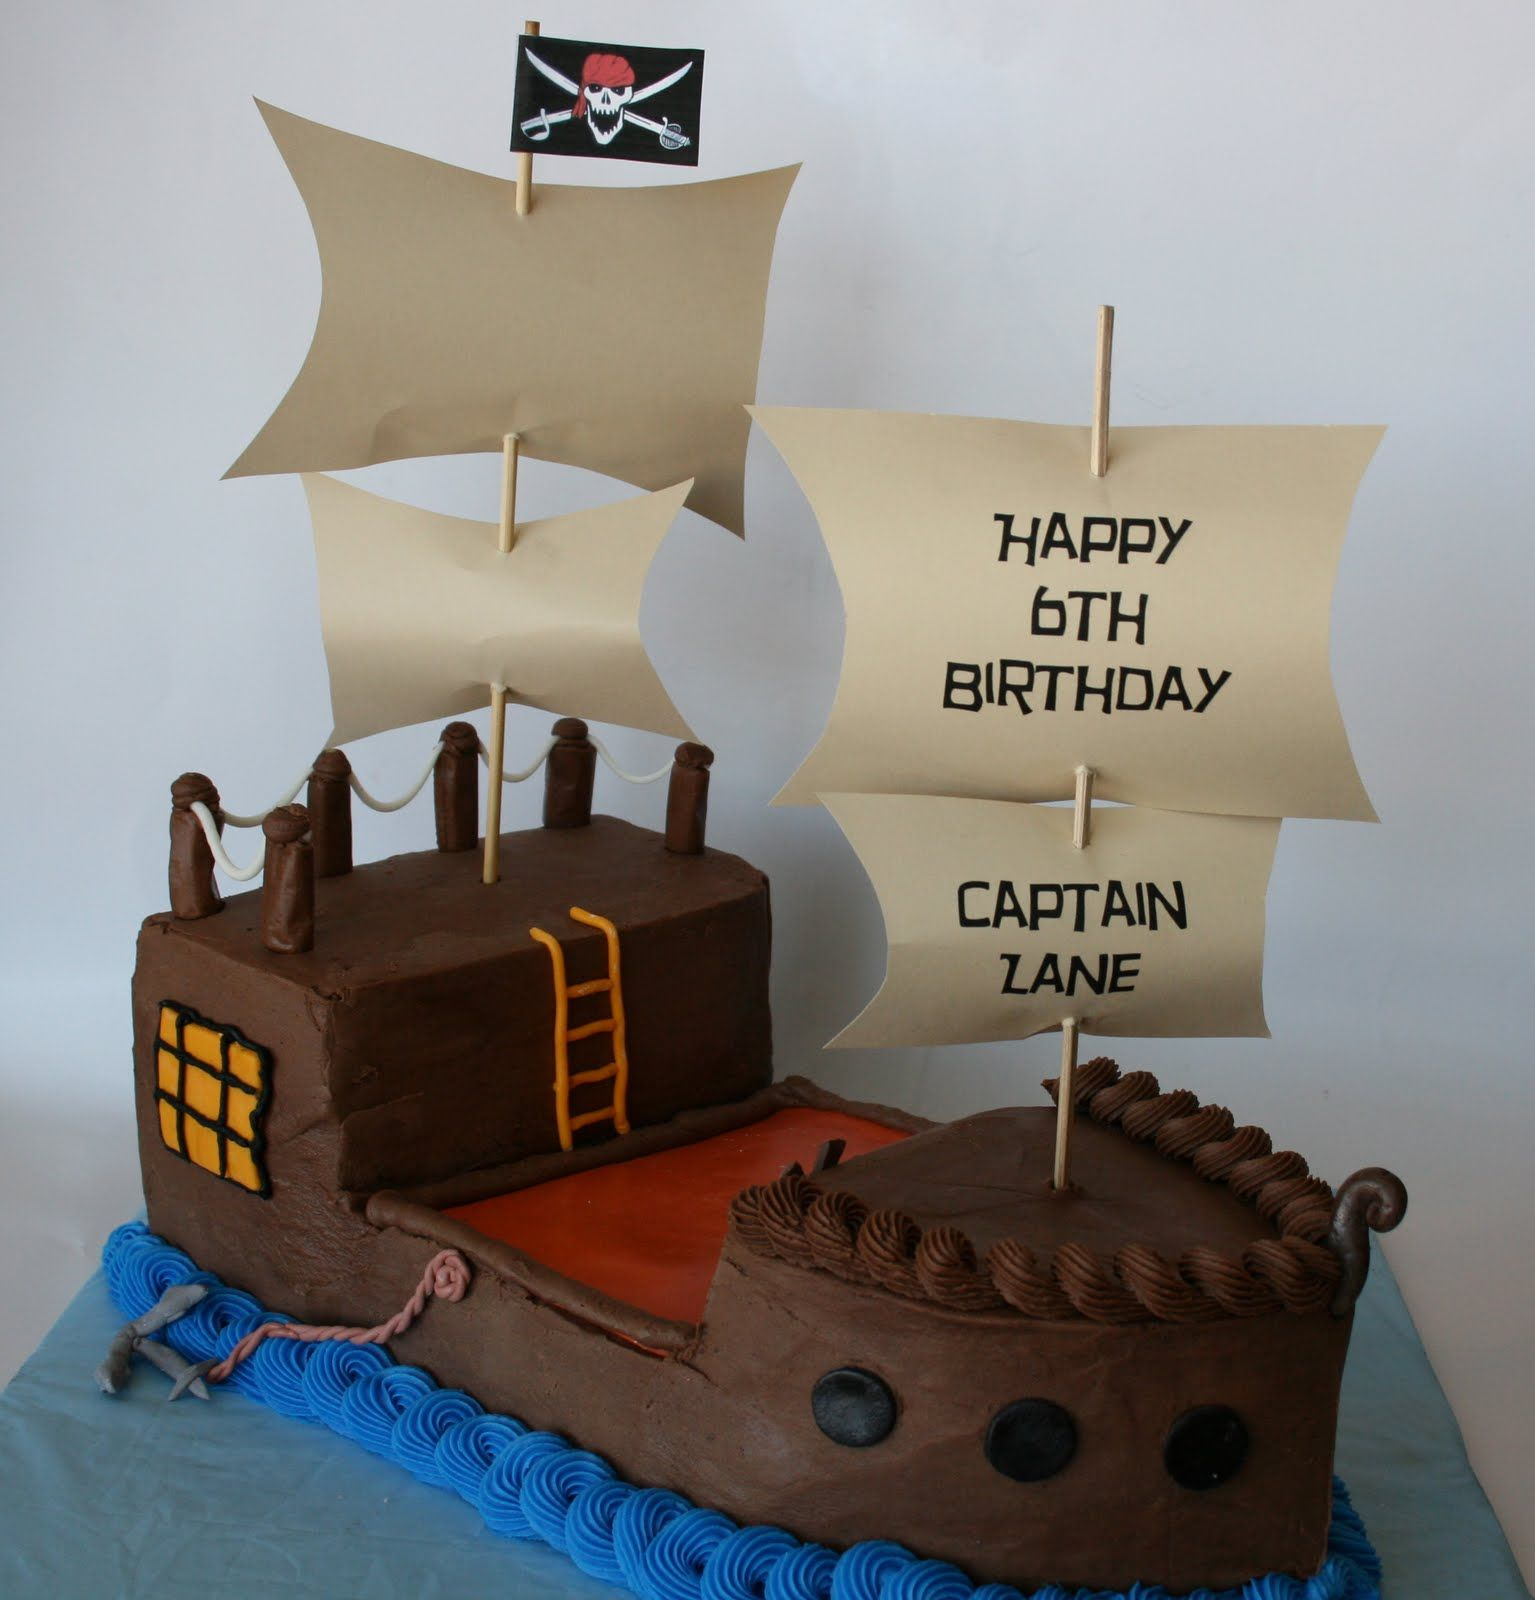 And everything sweet captian lanes pirate ship cake